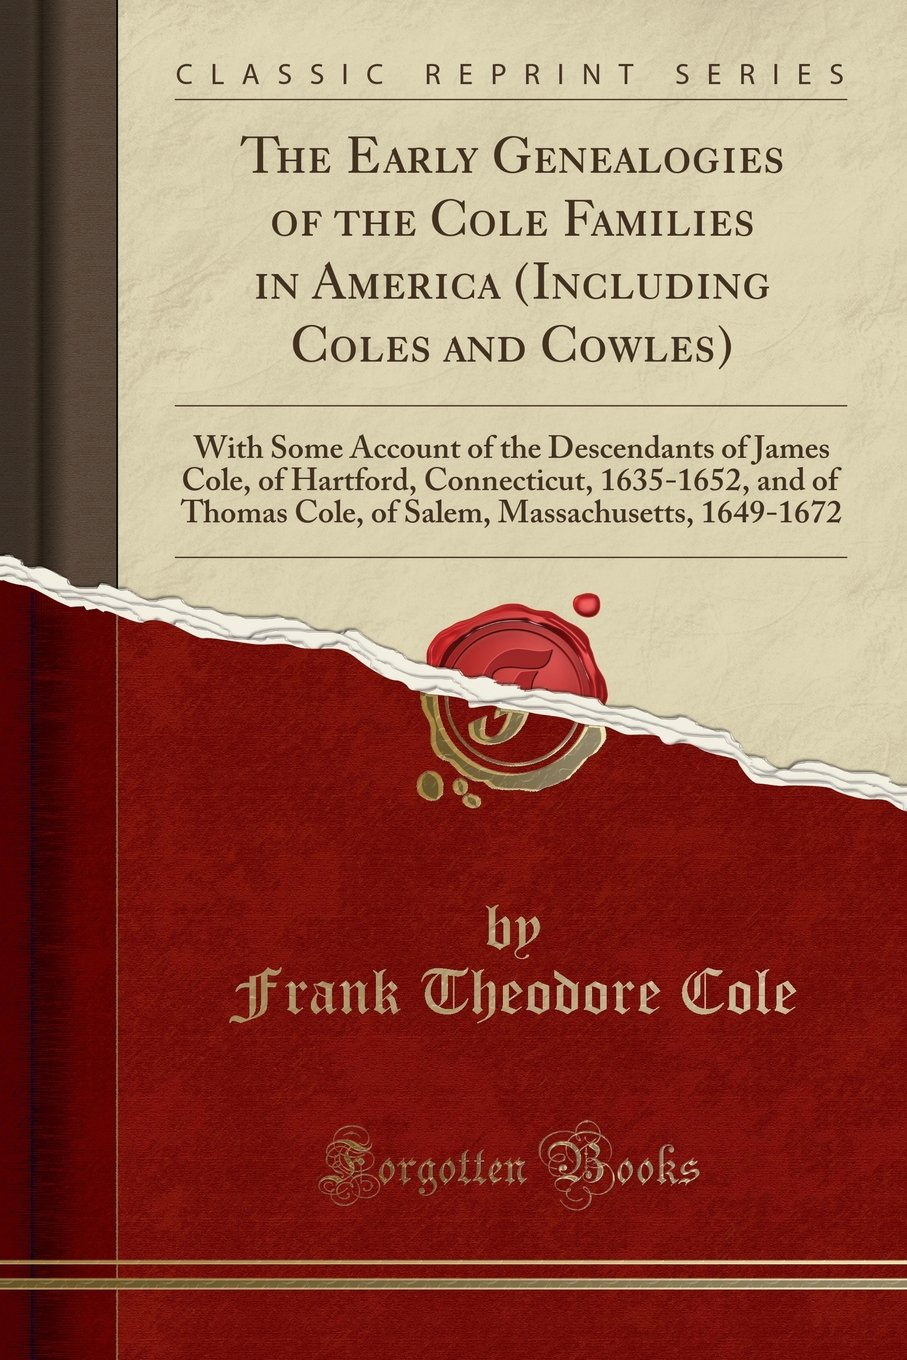 The Early Genealogies of the Cole Families in America (Including Coles and Cowles): With Some Account of the Descendants of James Cole, of Hartford, ... Massachusetts, 1649-1672 (Classic Reprint) ebook